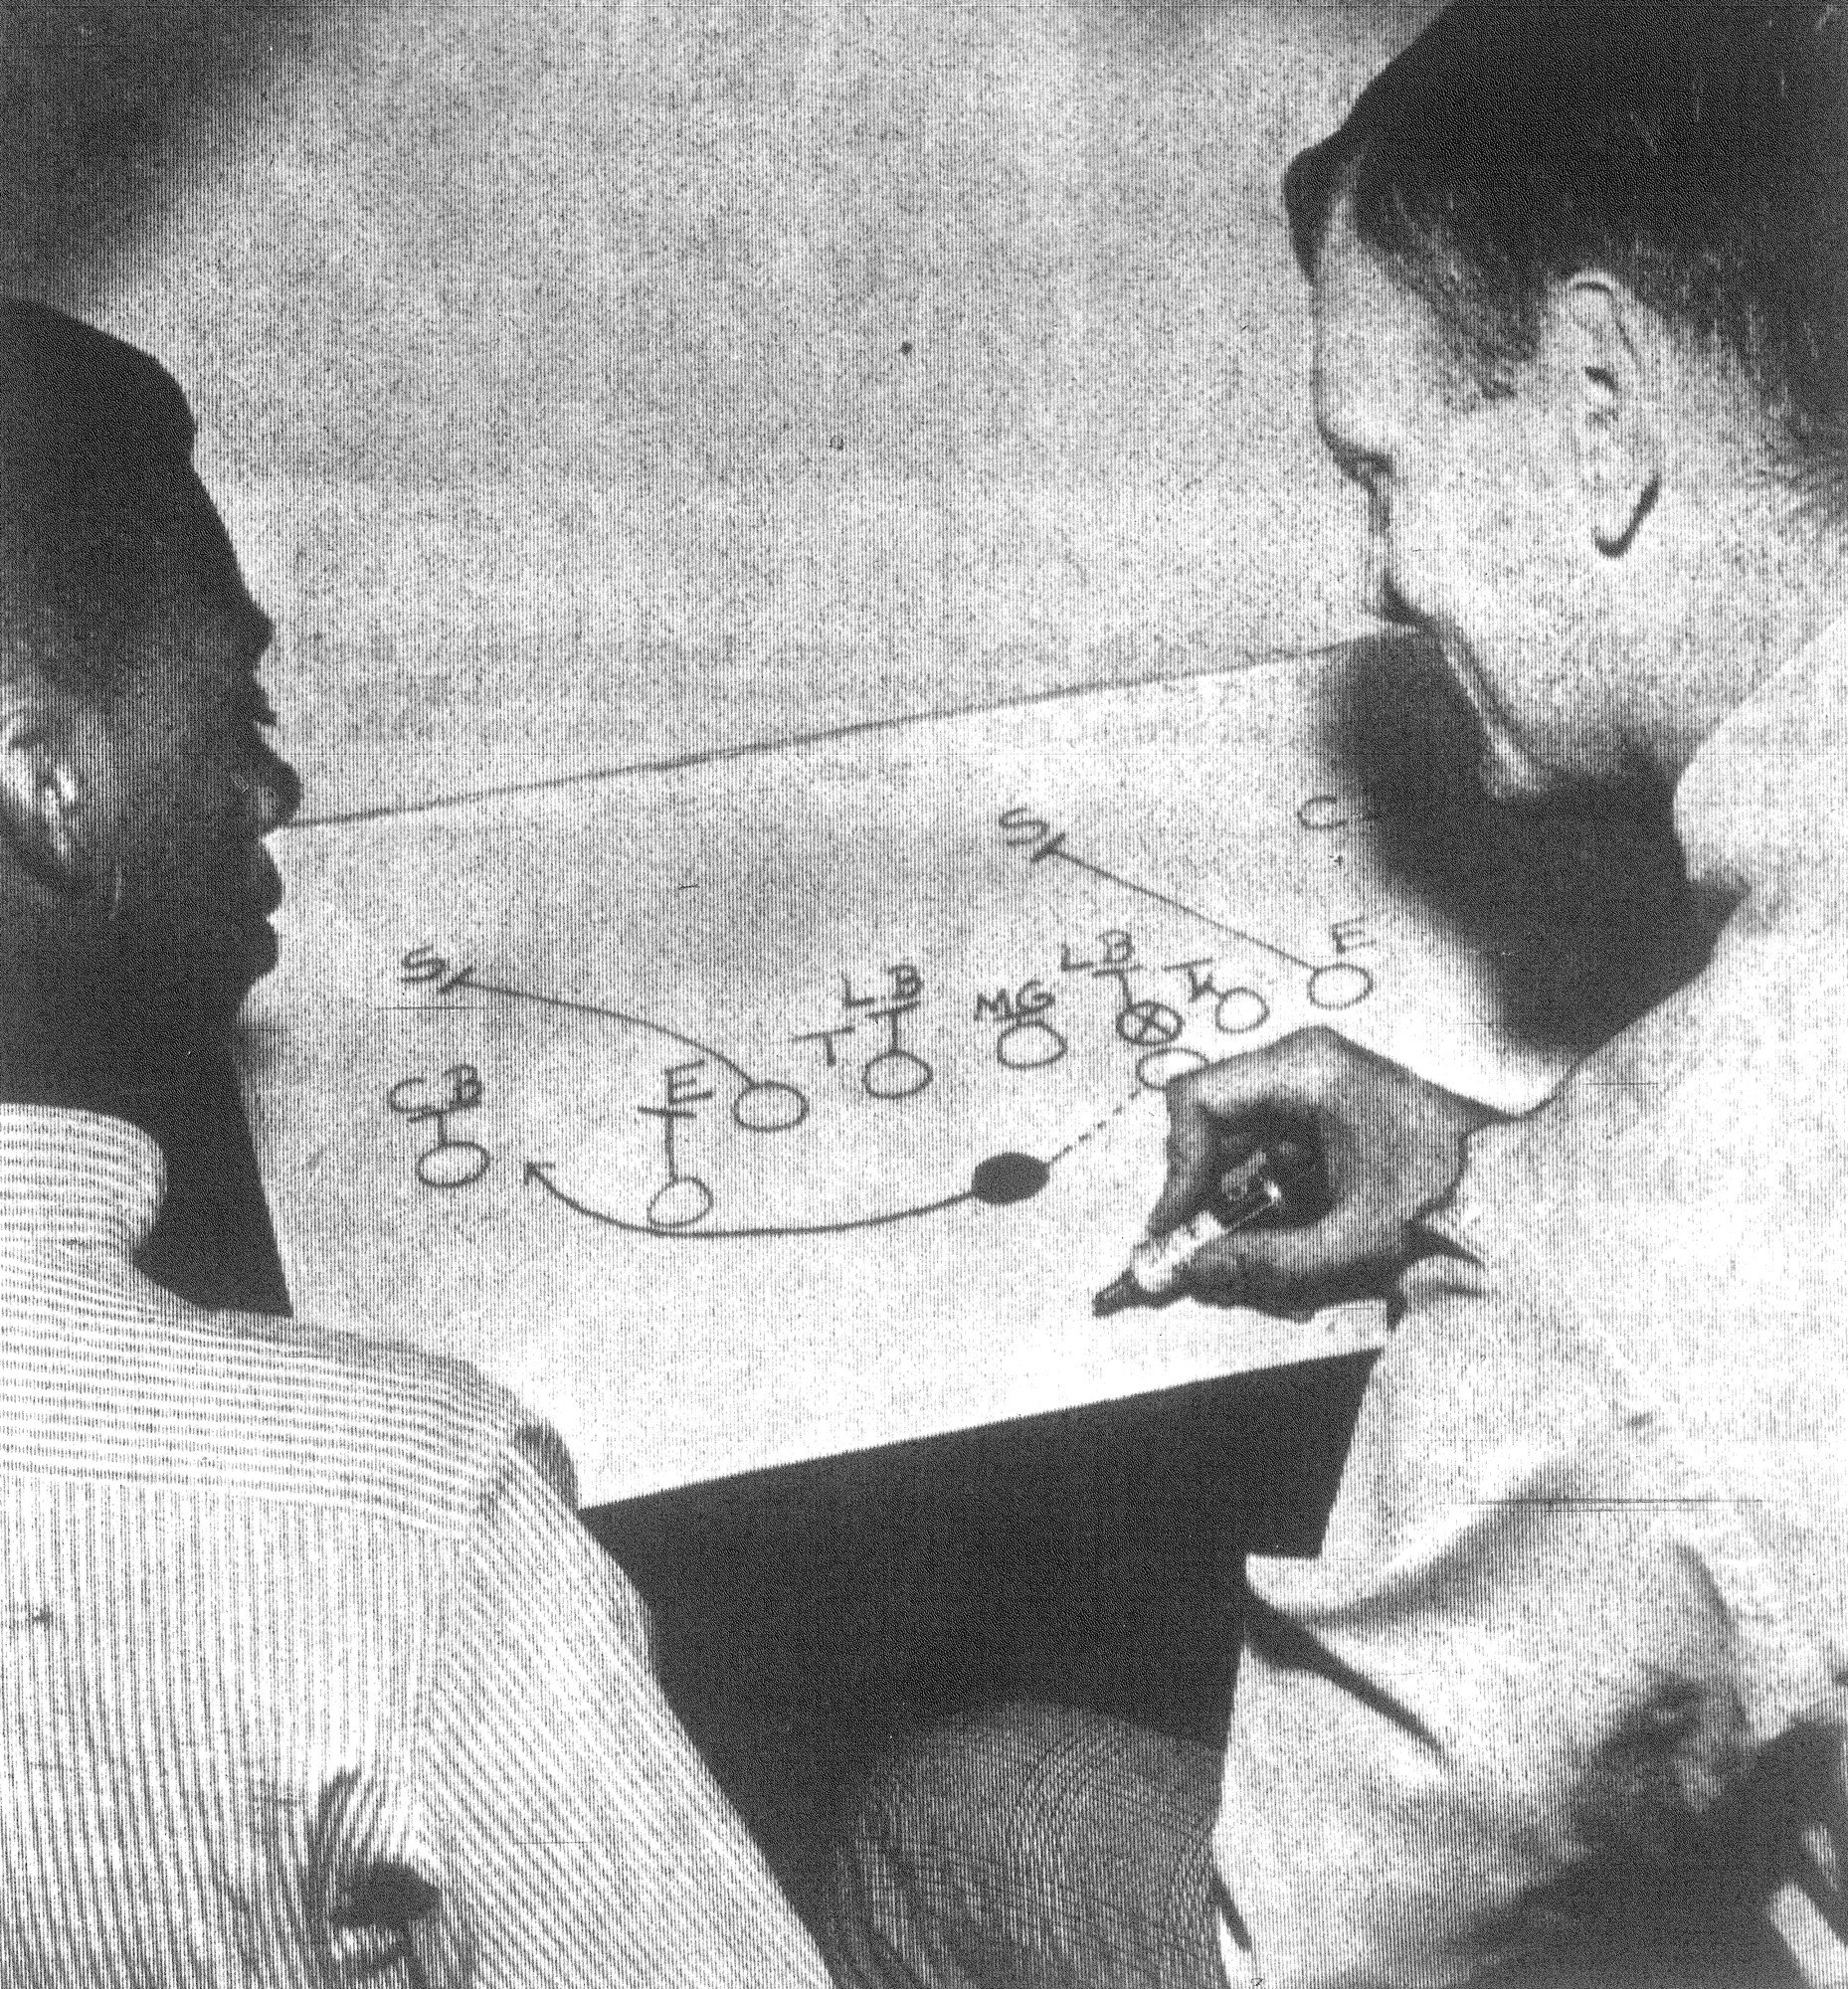 1968 - C. A. Wilson and Coach Buddy Sharp examine a play Wilson used to roll up many yards. The play utilizes Wilson's speed to the outside.